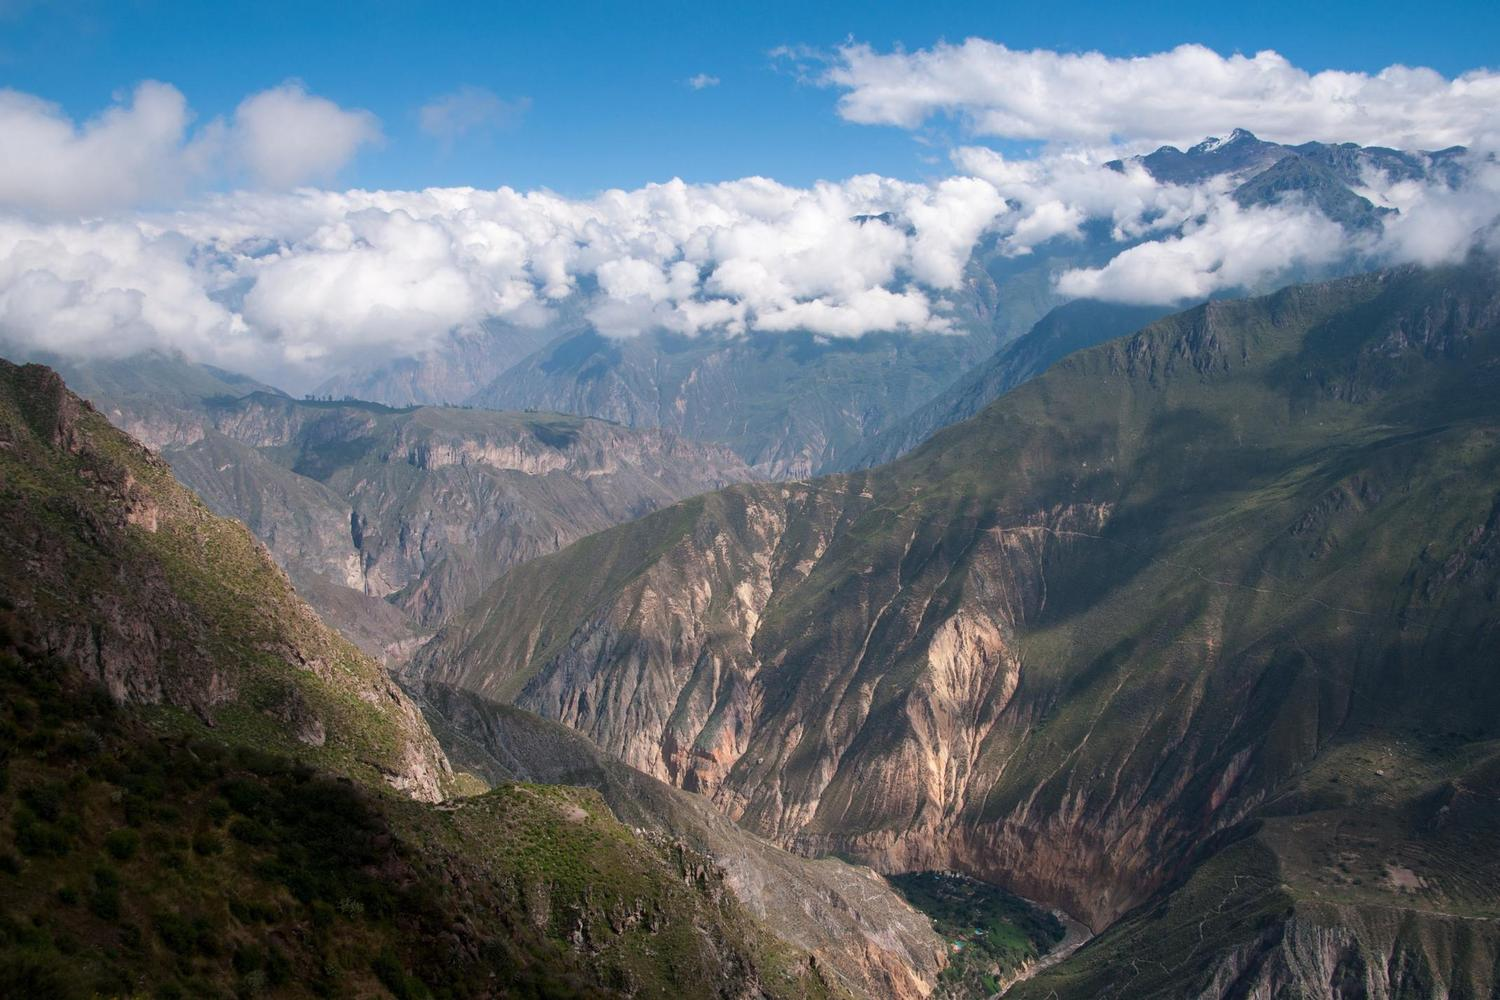 The deep and beautiful Colca Canyon